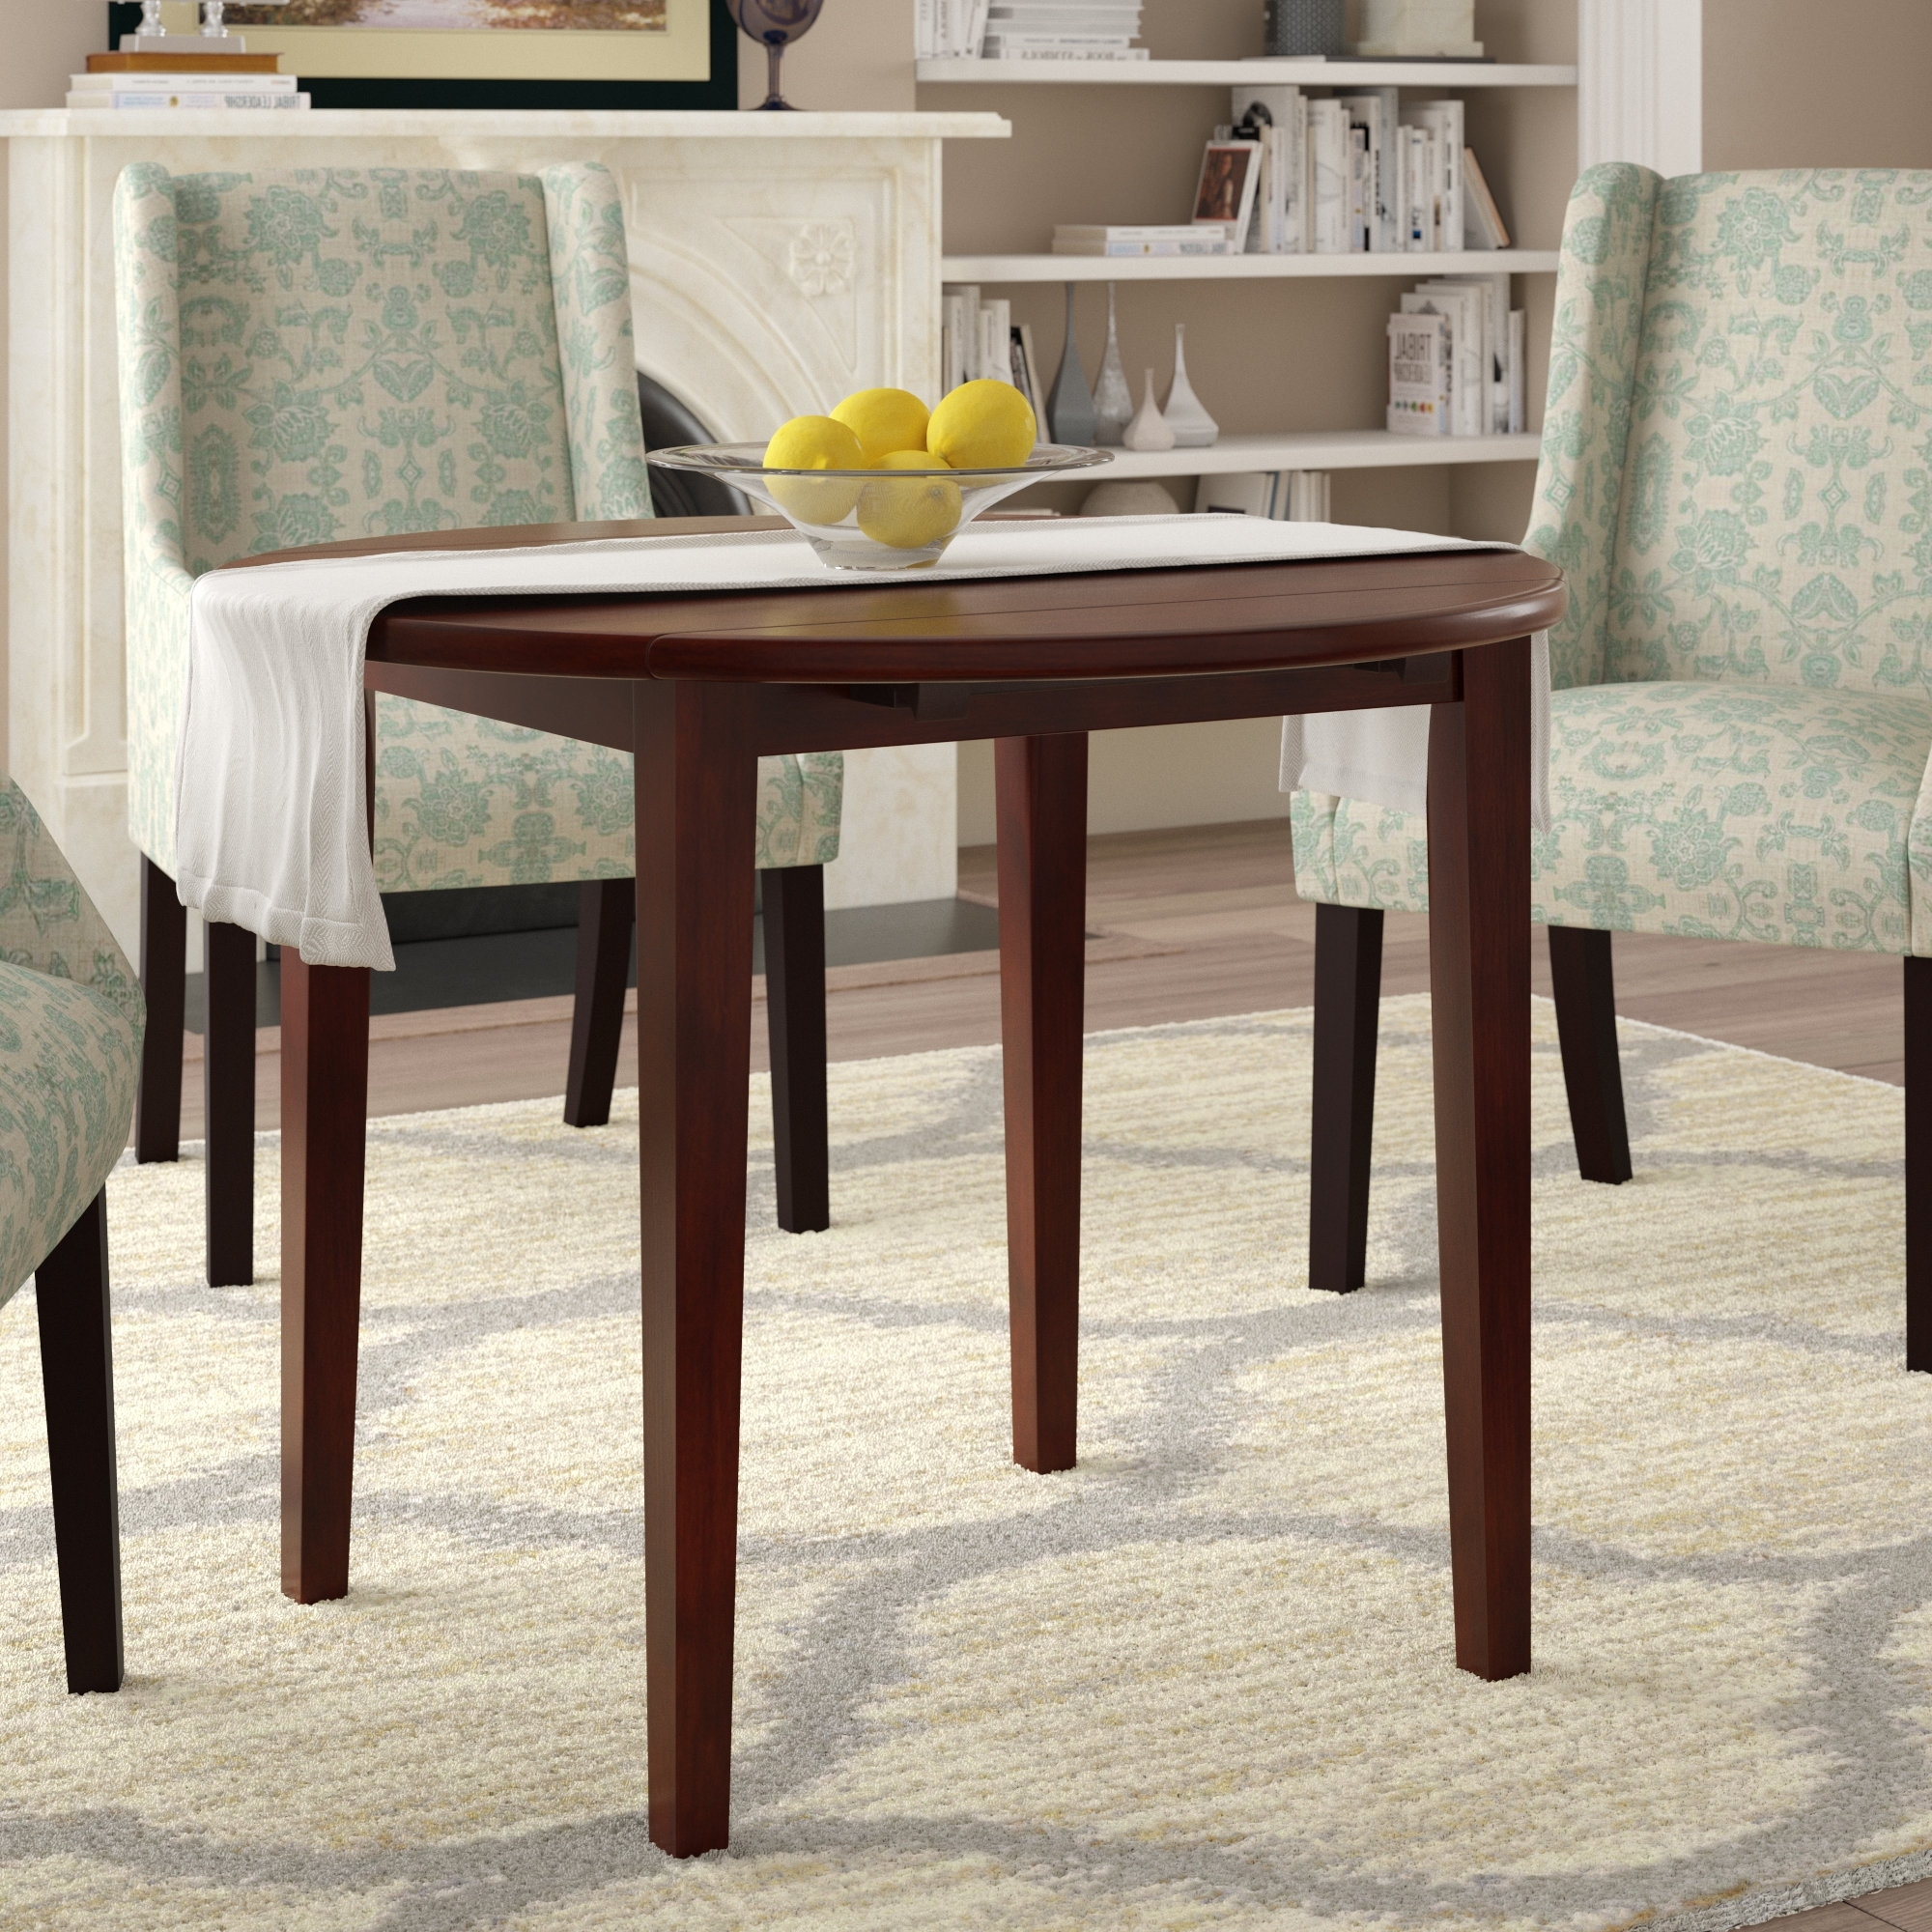 Most Current Cheap Drop Leaf Dining Tables Pertaining To Alcott Hill Kendall Drop Leaf Dining Table & Reviews (View 15 of 25)